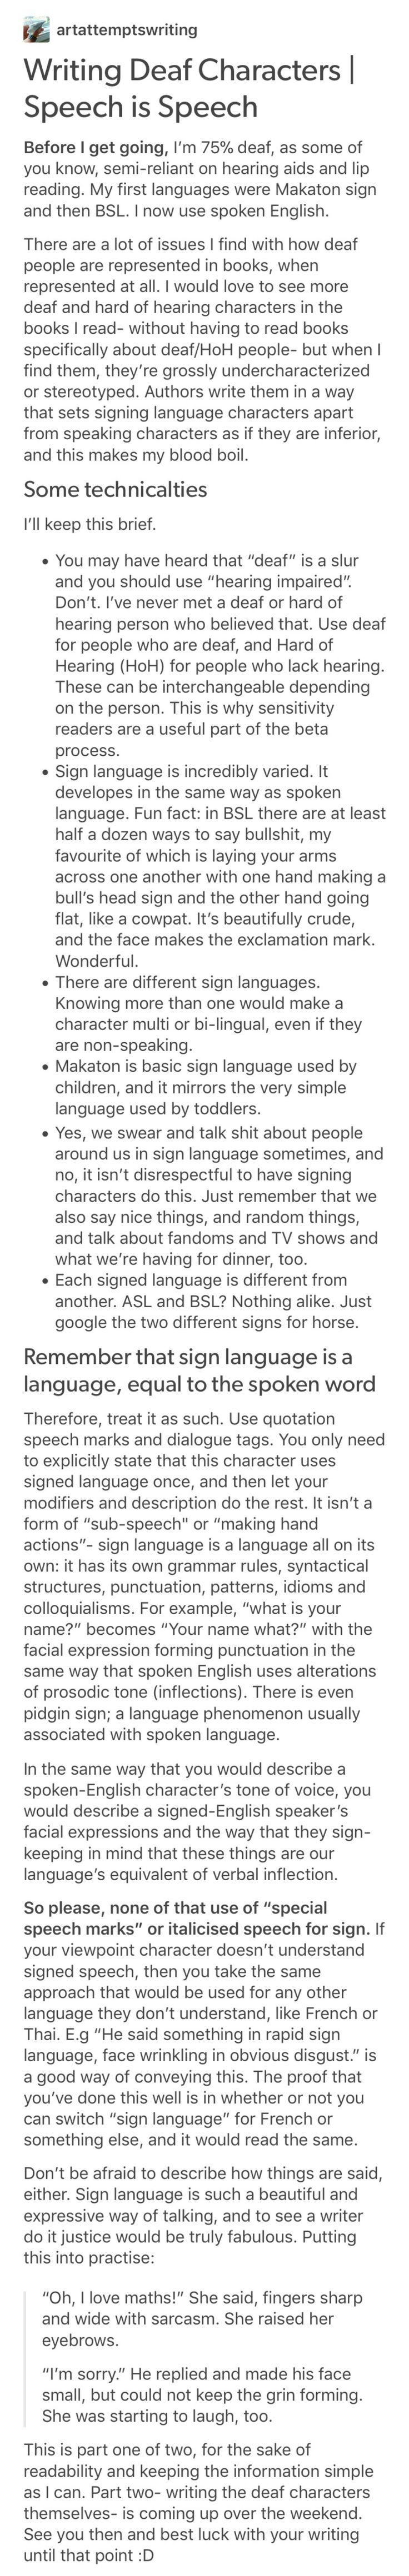 Wow wow wow, I really needed this. I would really like to write deaf characters but I've had no idea how to pull it off until now.